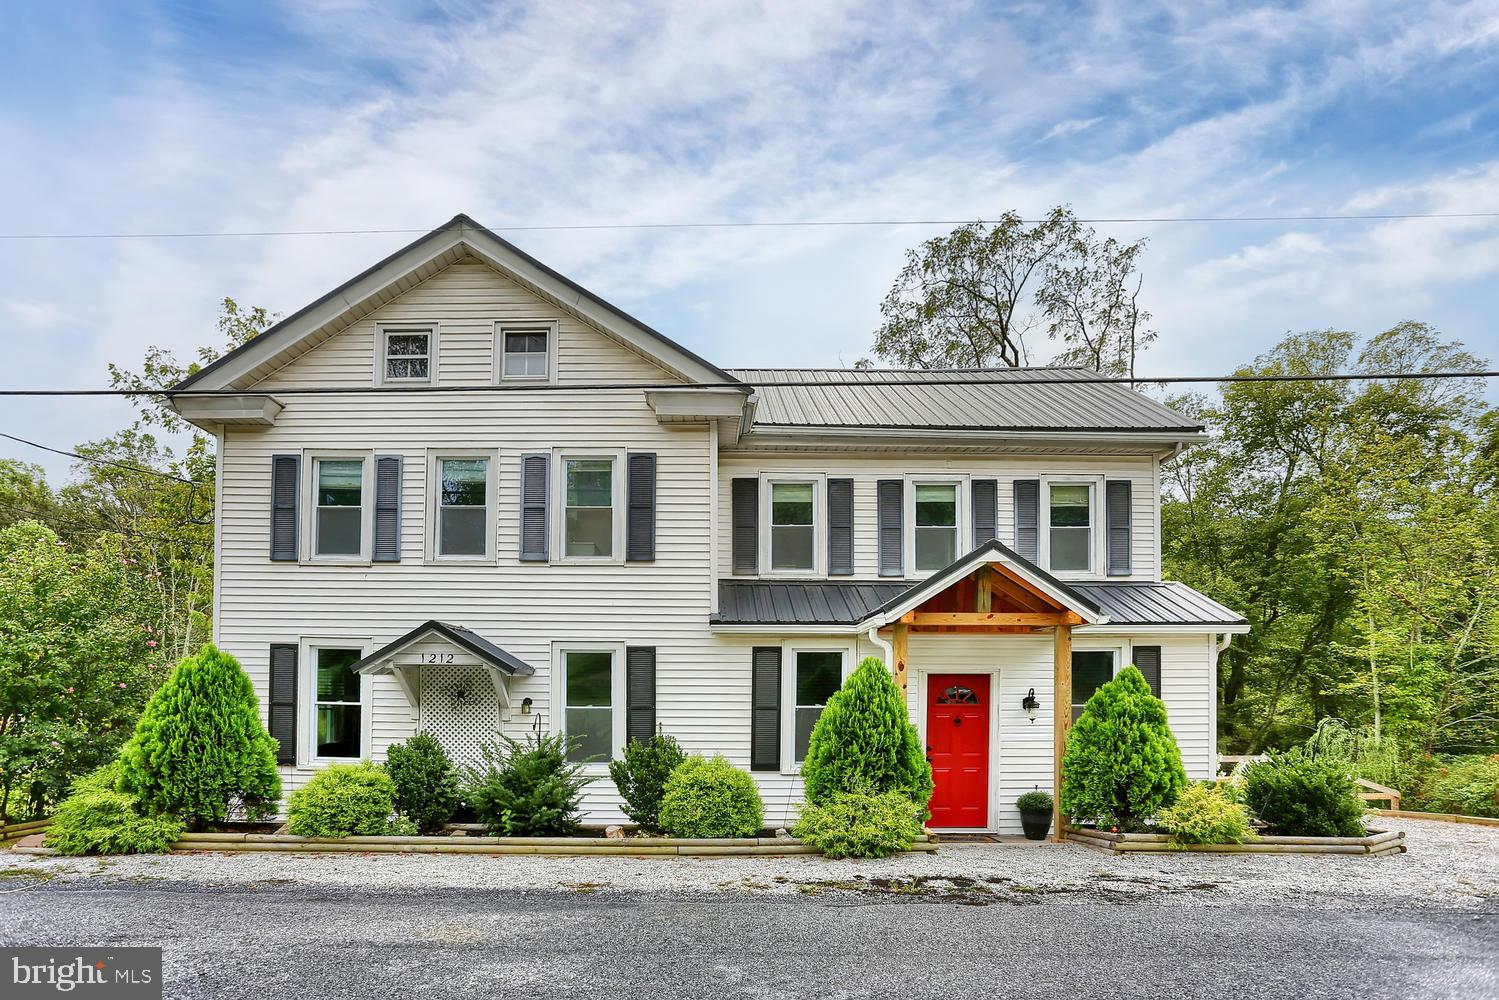 1212 RED HILL ROAD, DAUPHIN, PA 17018